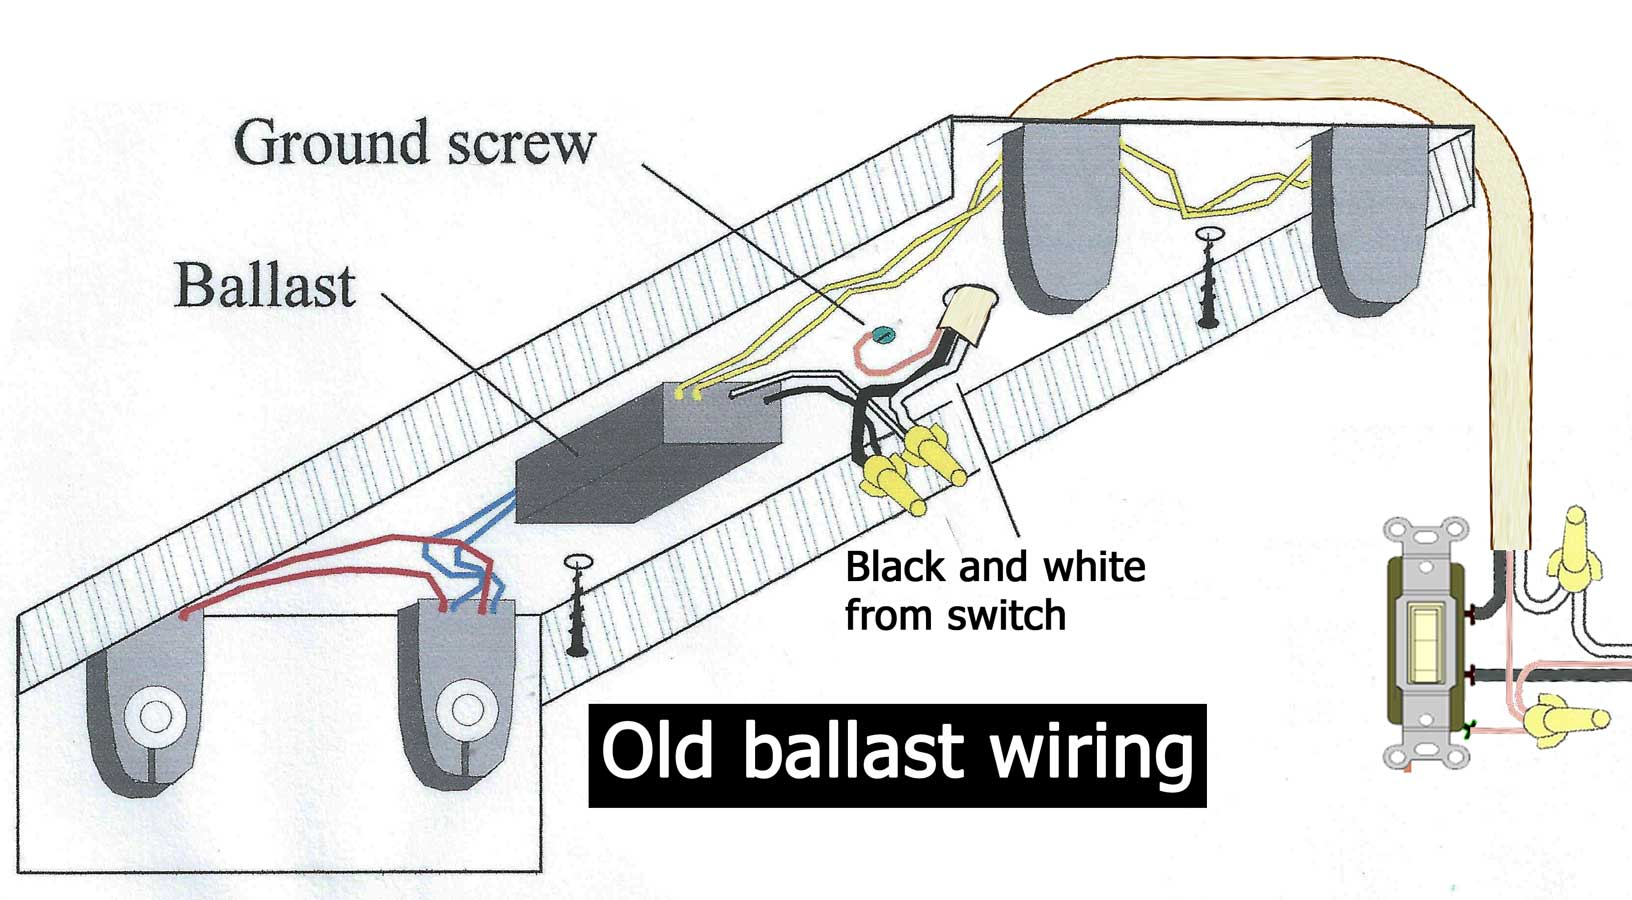 old ballast to new ballast wiring old image wiring how to wire electronic ballast on old ballast to new ballast wiring